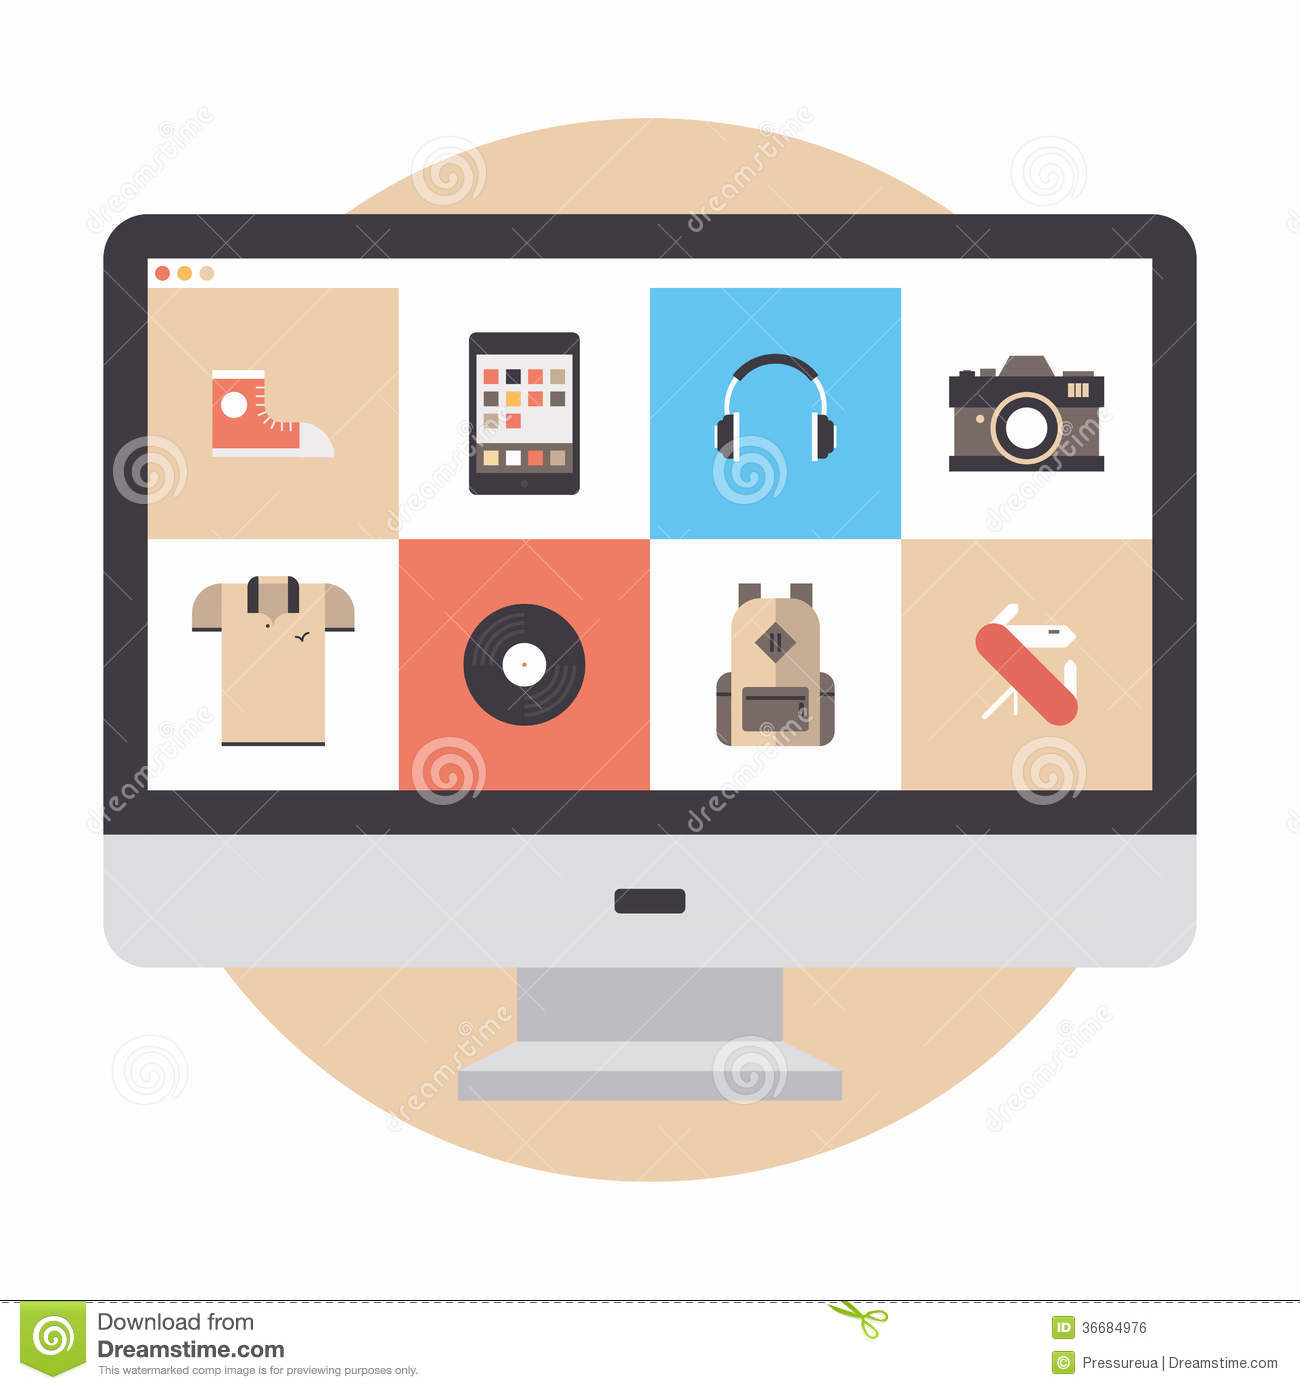 online-store-flat-illustration-design-modern-vector-concept-designer-portfolio-website-various-icons-shopping-web-36684976.jpg